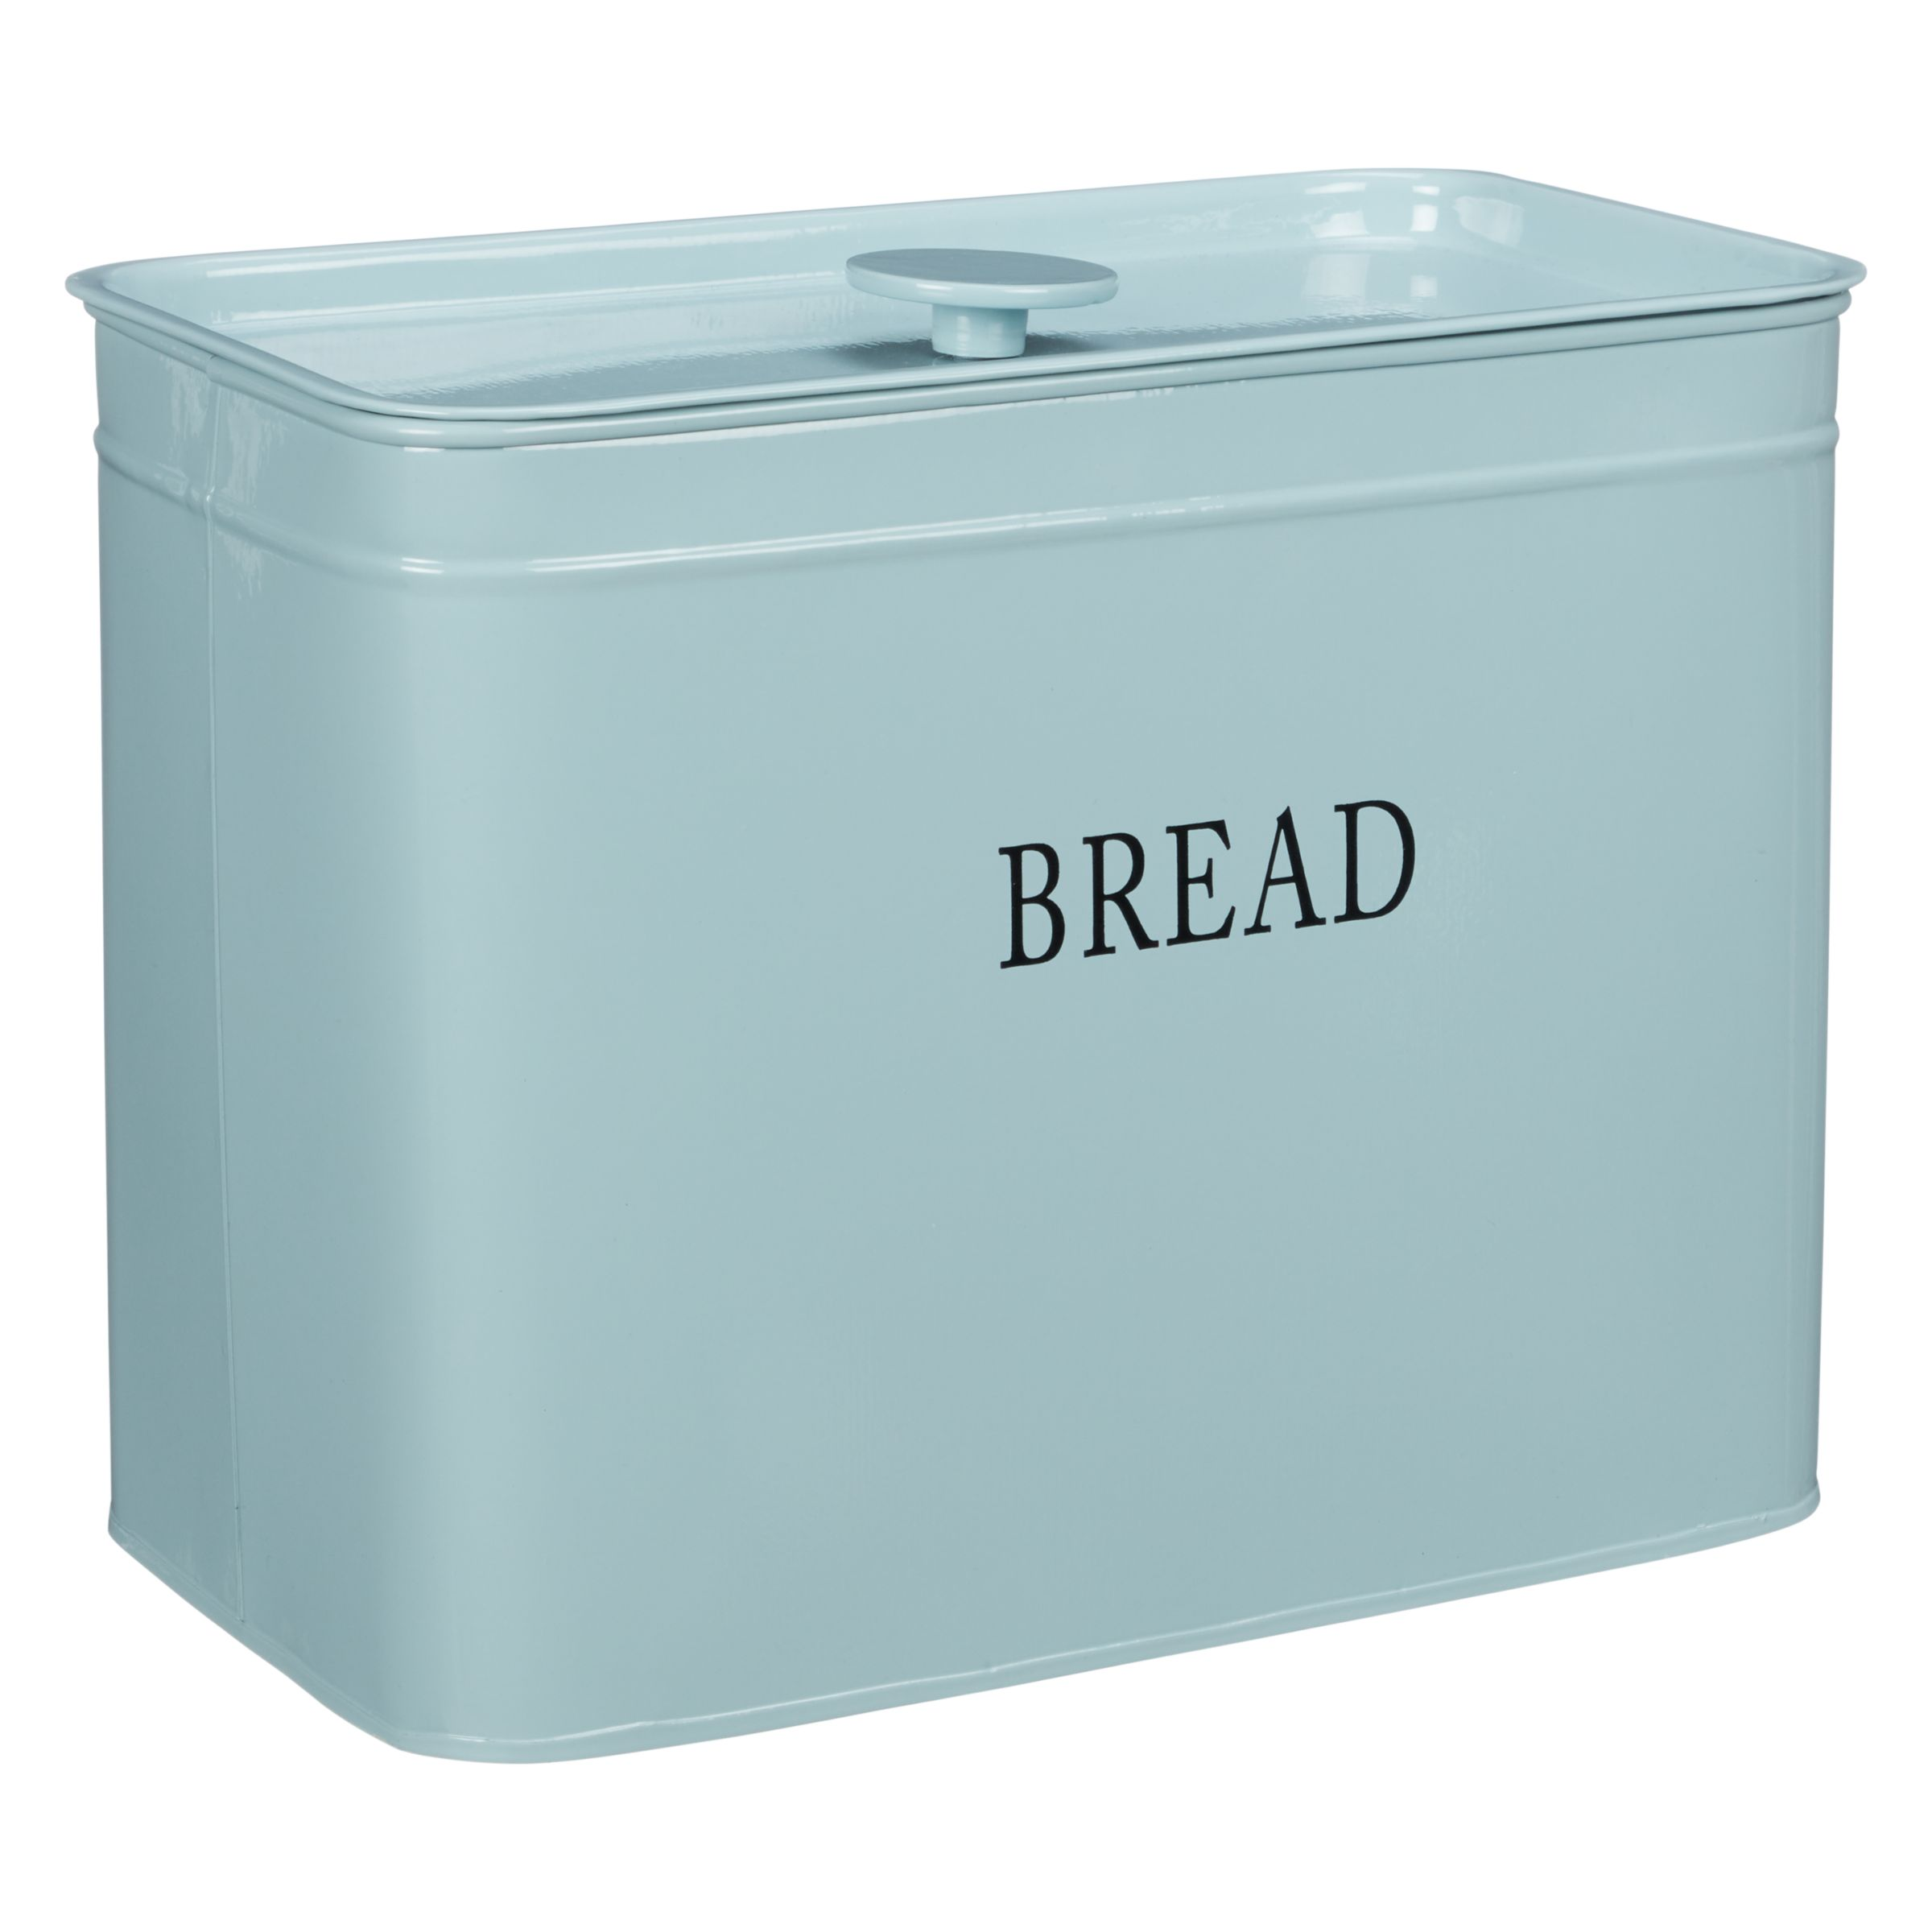 John Lewis Stainless Steel Roll Top Bread Bin | Compare | Bluewater